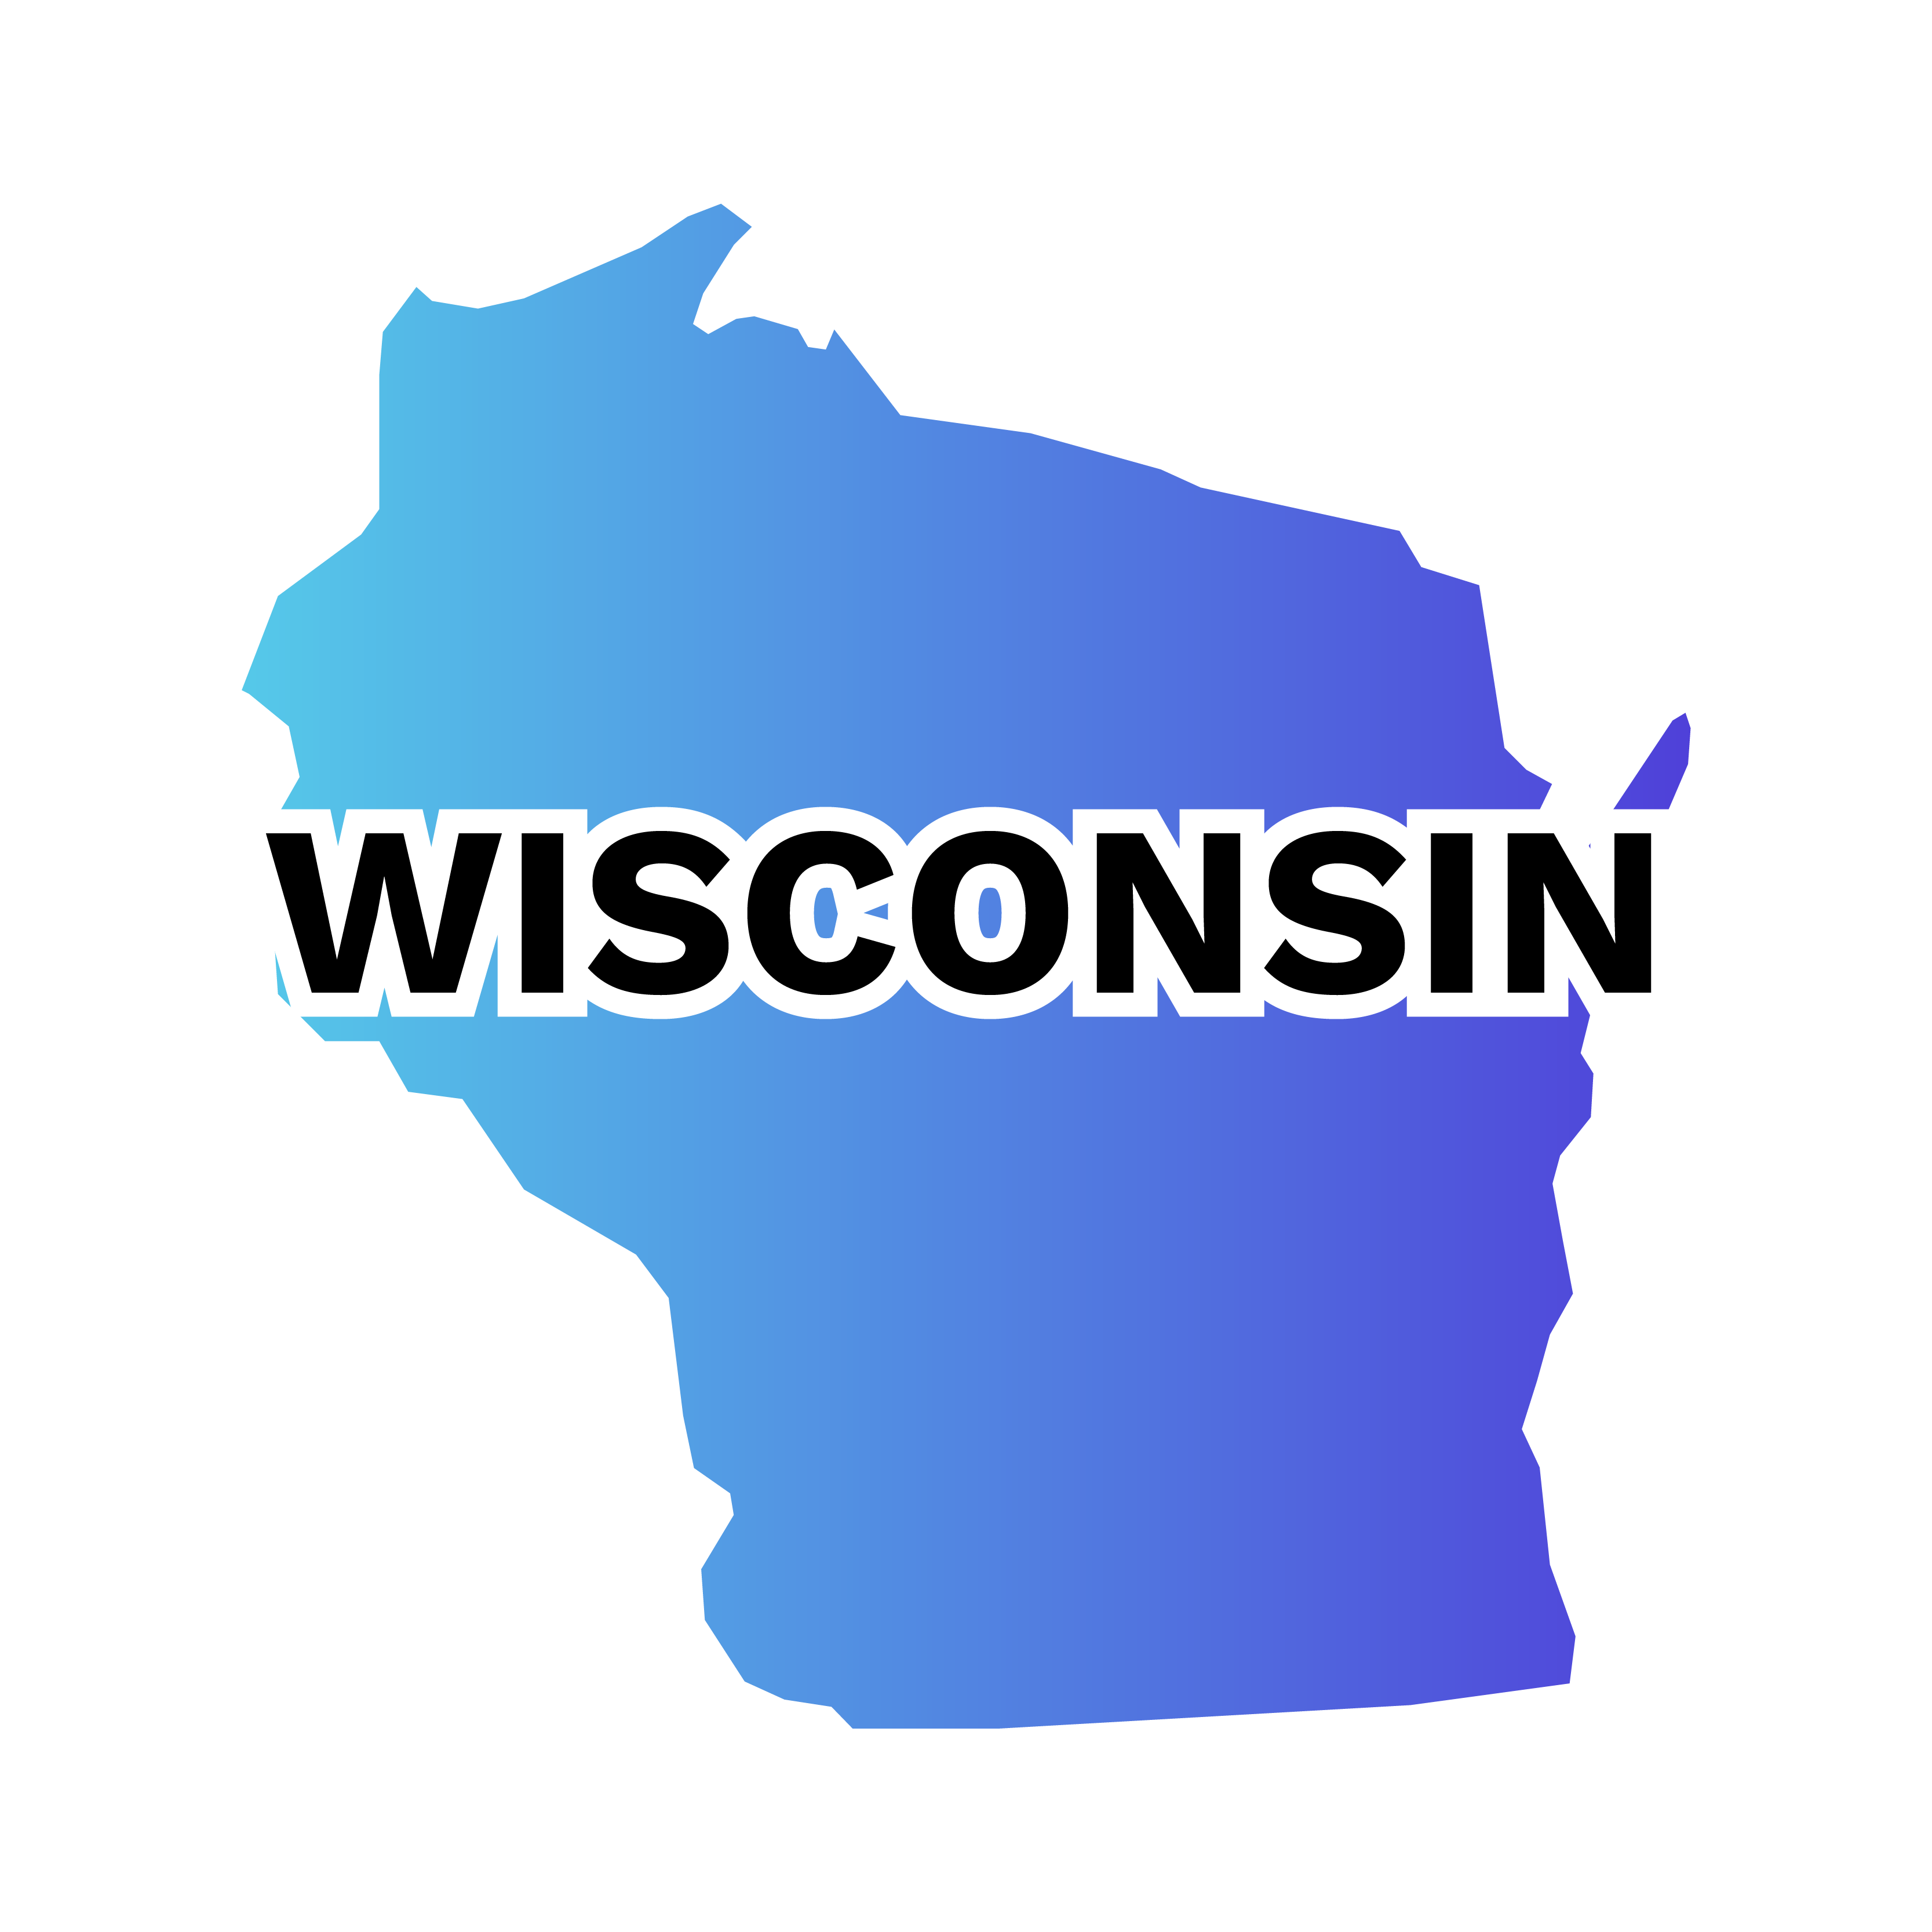 Wisconsin State Image